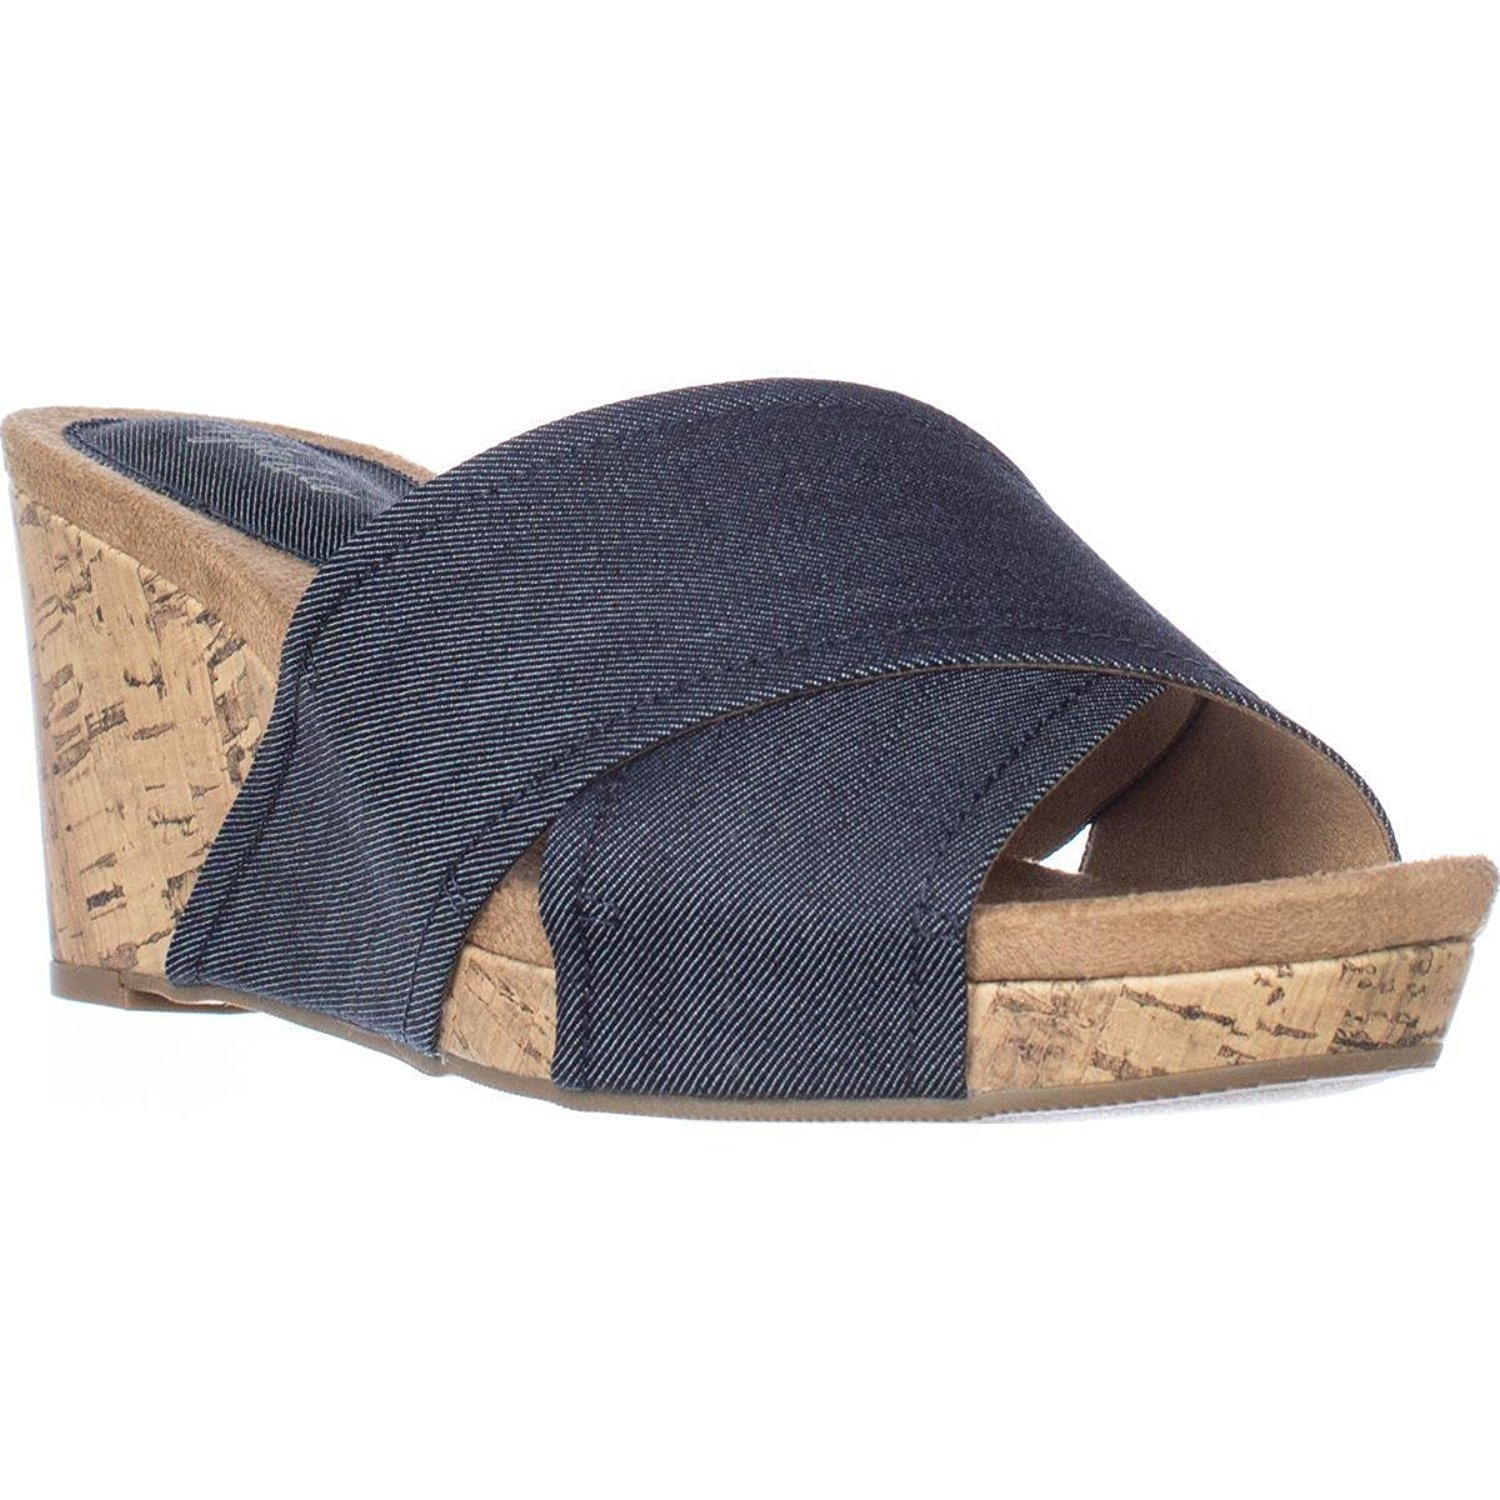 Style & Co. Womens Jillee Canvas Open Toe Casual Platform, Indigo, Size 8.0